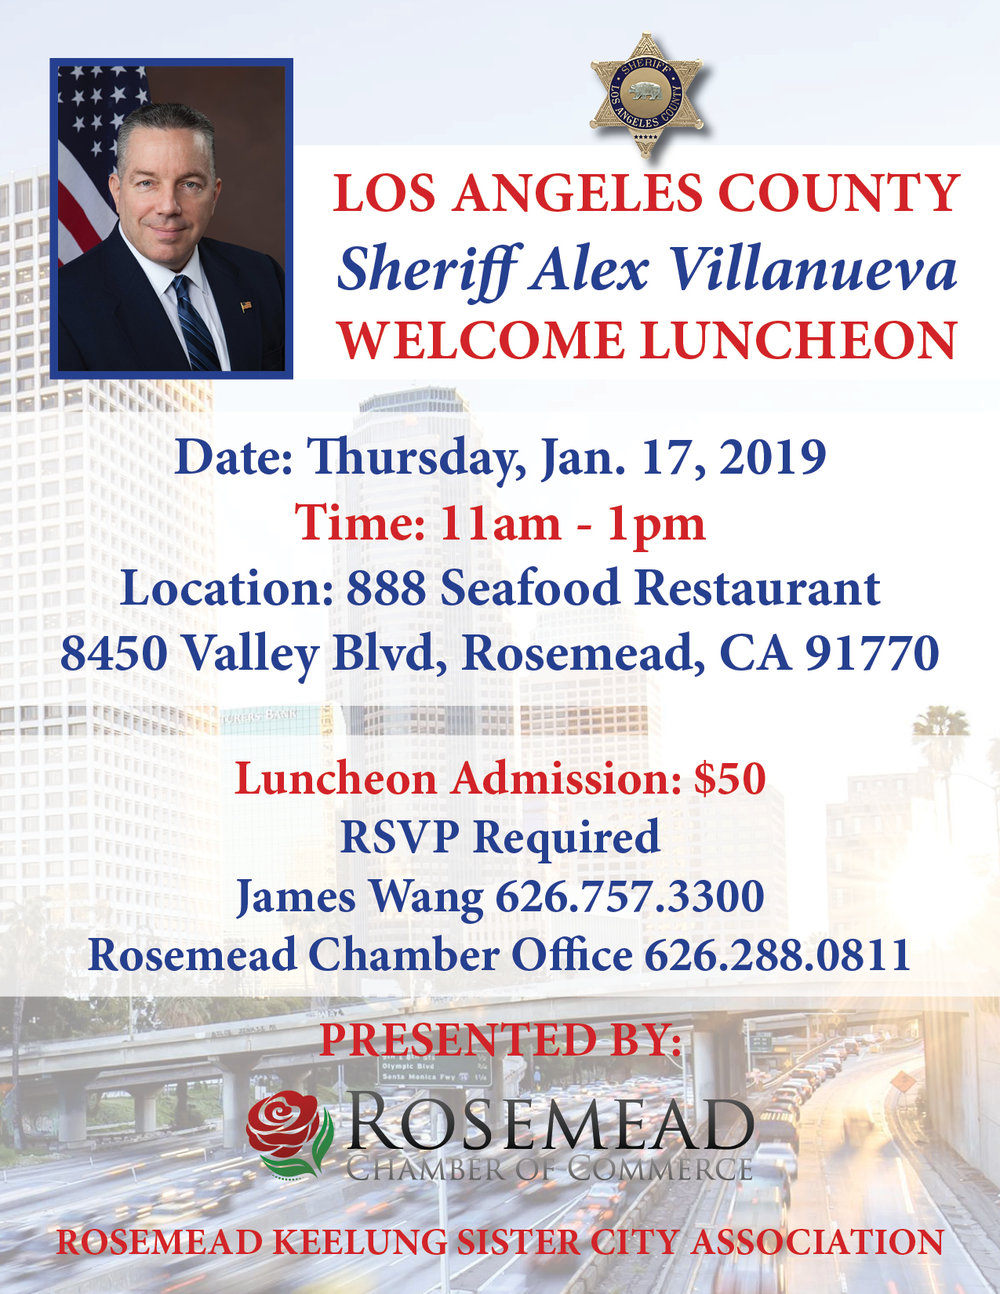 lasd alex villanueva welcome luncheon - January 17th, 2019